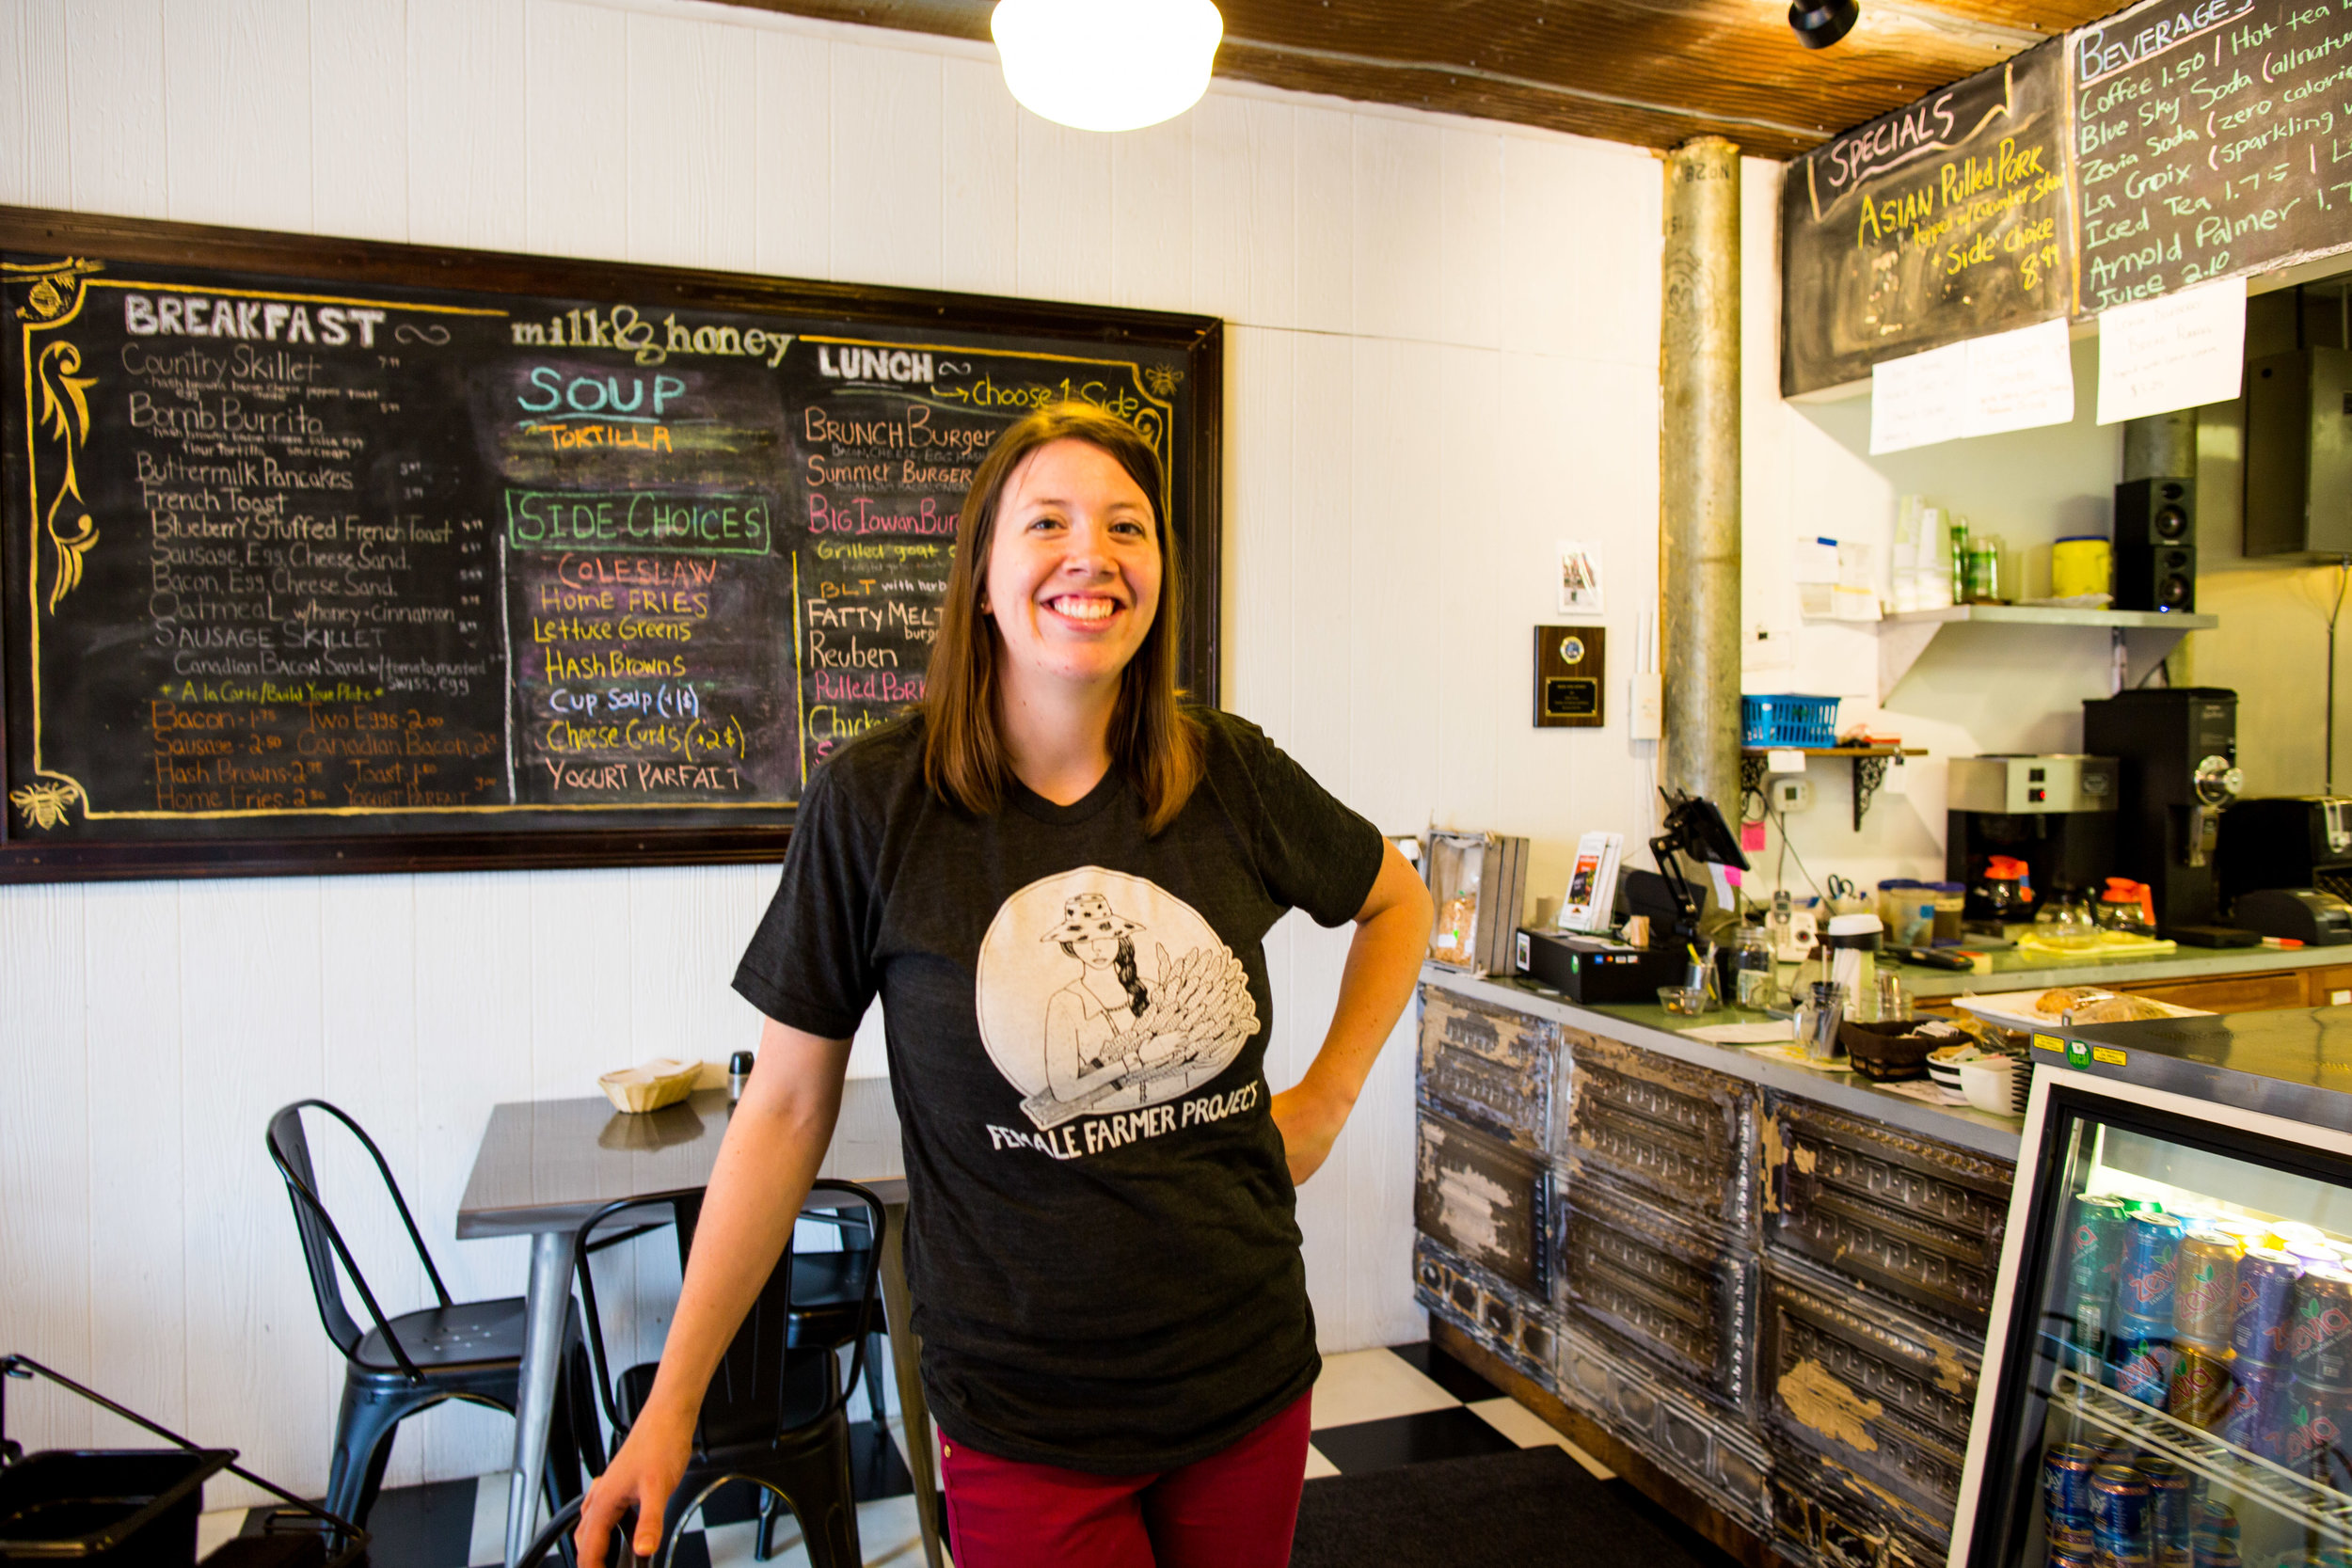 Ellen also owns and operates a farm to table cafe in Harlan, IA